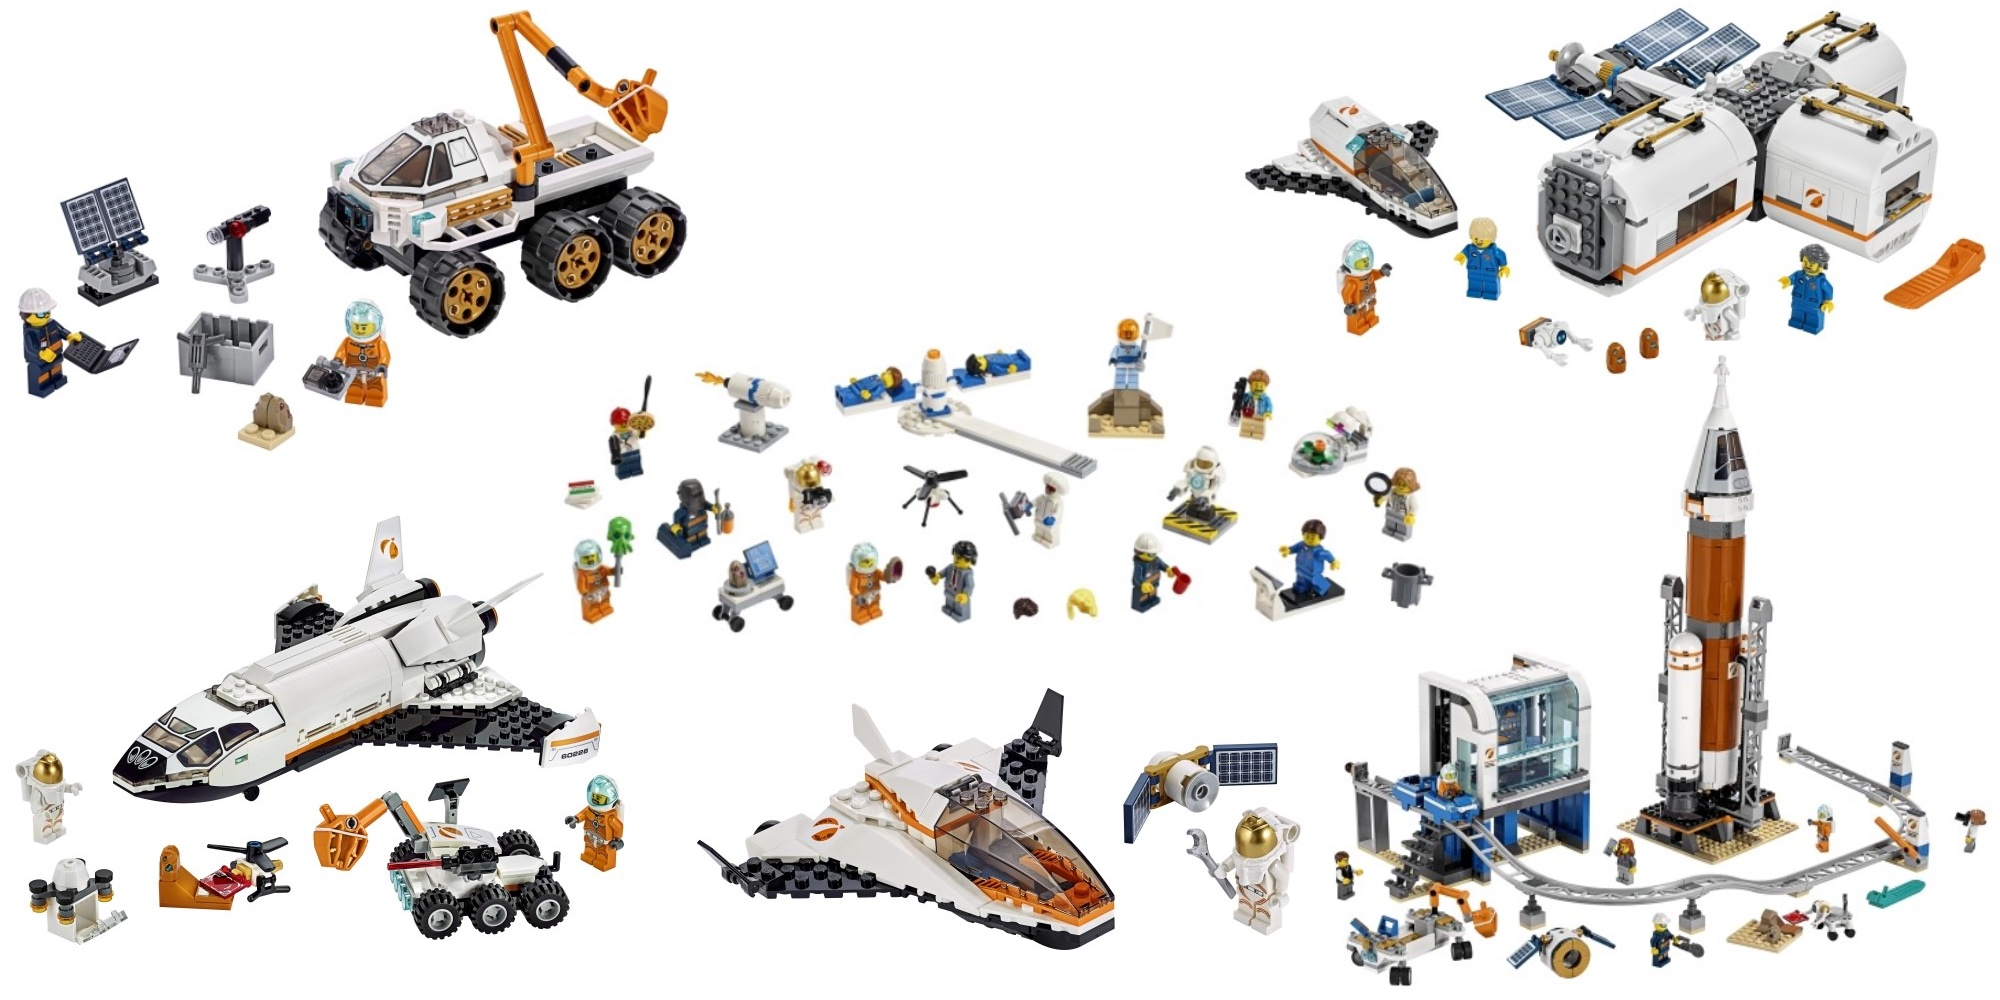 LEGO City Space Sets join new Creator builds this summer - 9to5Toys